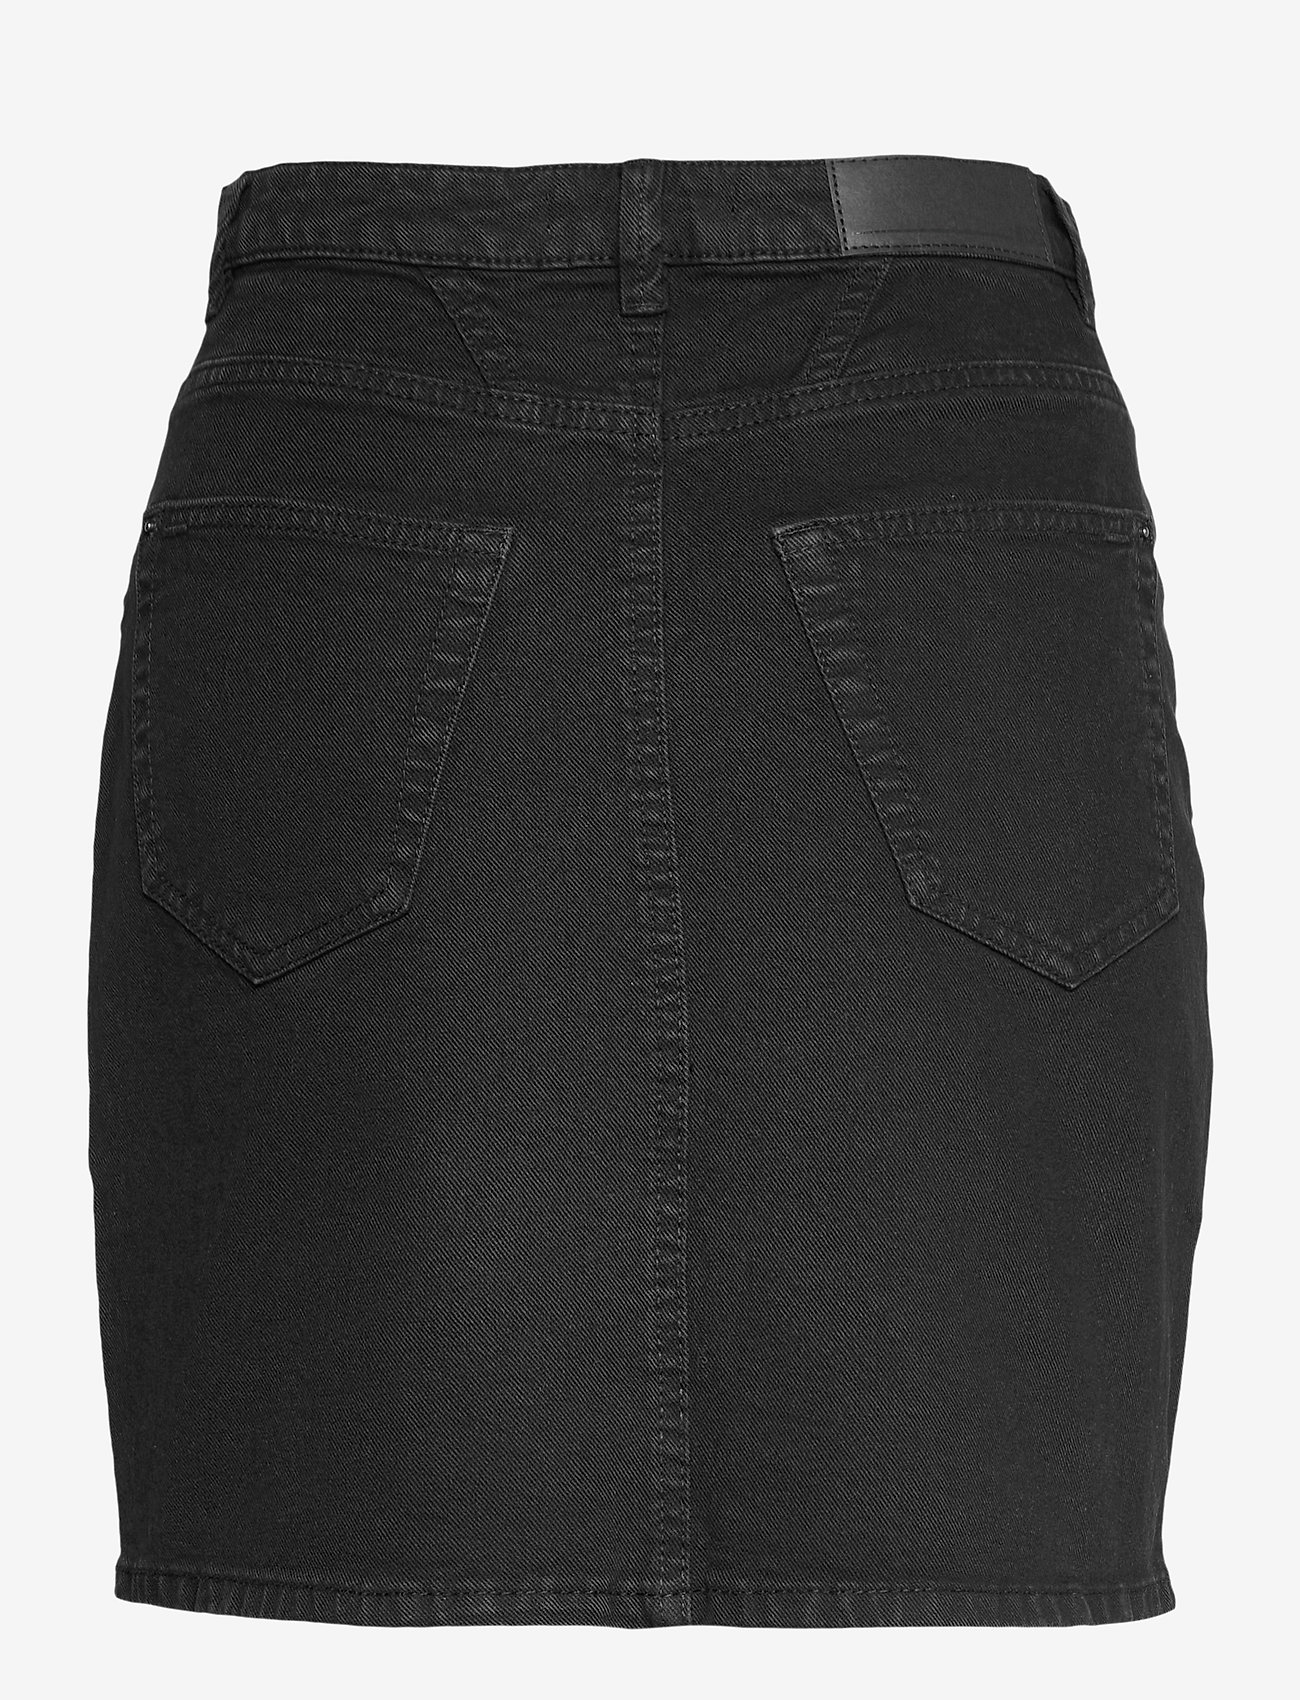 EDC by Esprit - Skirts woven - jeansröcke - black - 1